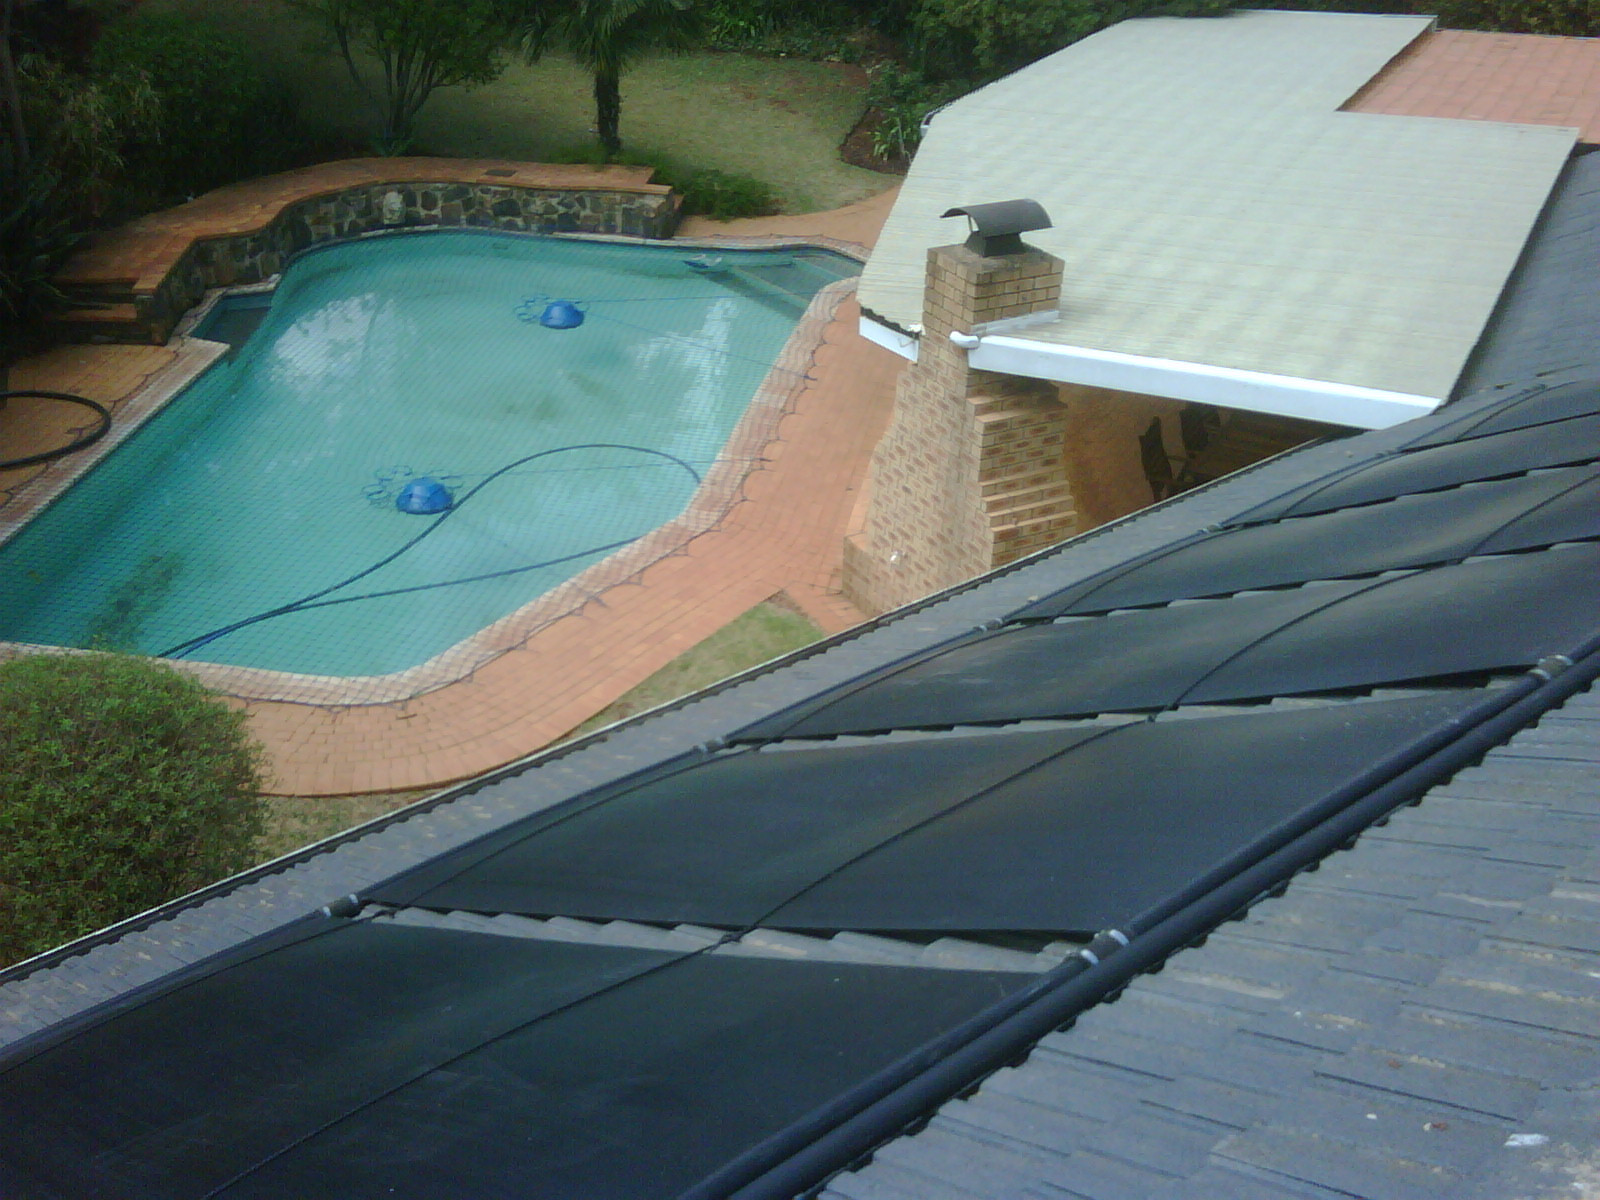 Best ideas about Solar Heater For Inground Pool . Save or Pin The Advantages of Pool Solar Heater Now.